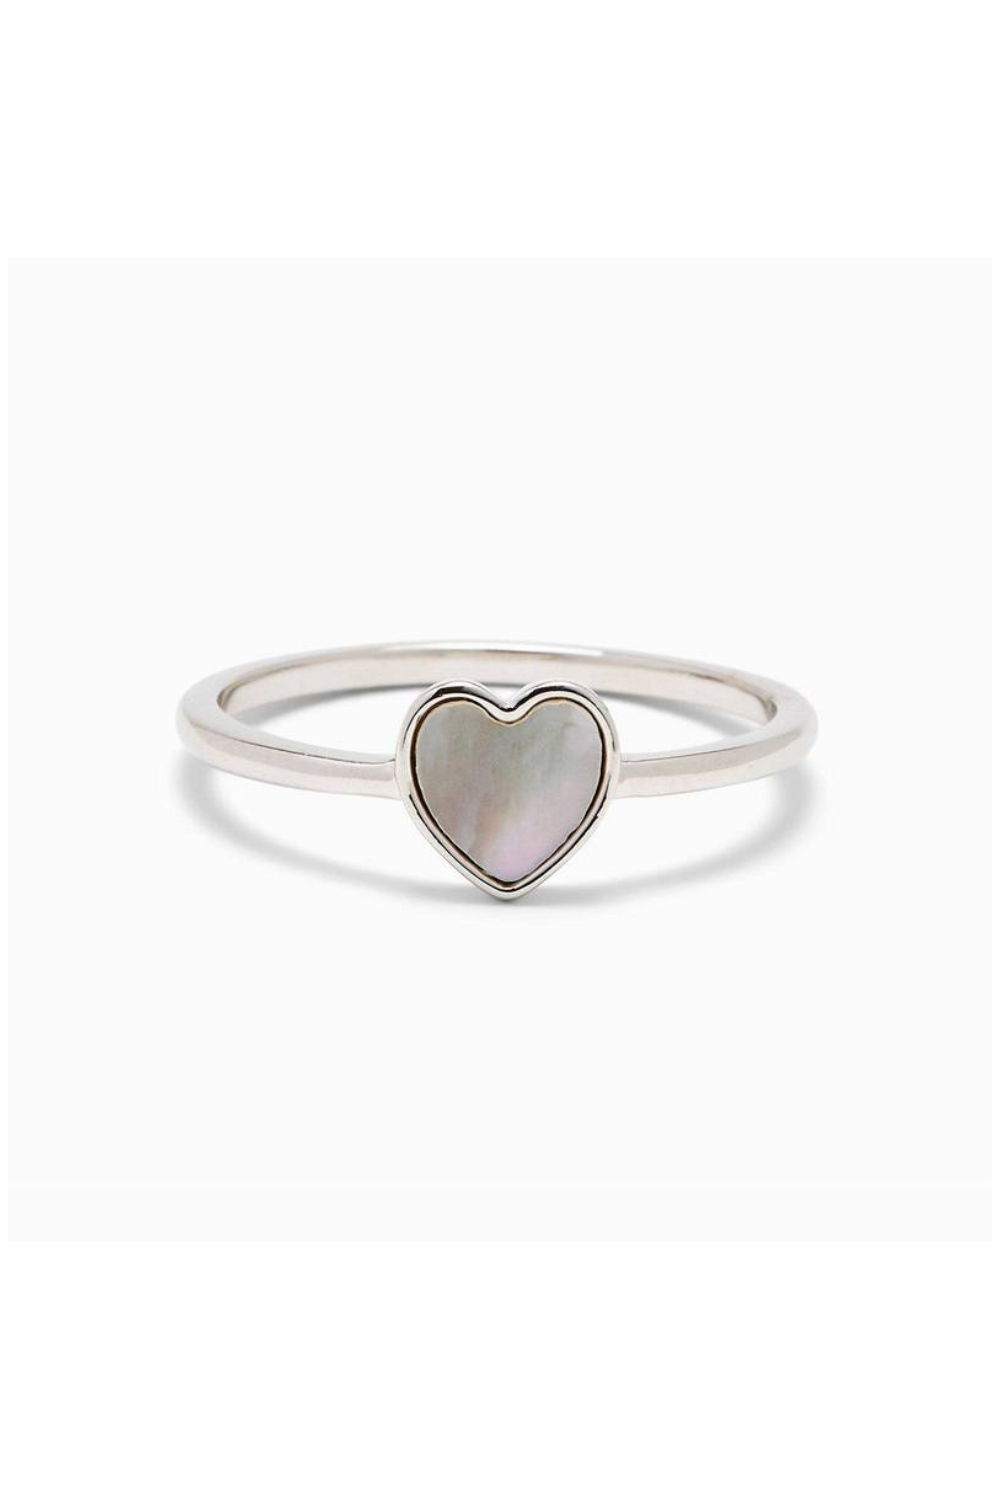 Pura Vida Heart of Pearl Ring | Bella Lucca Boutique